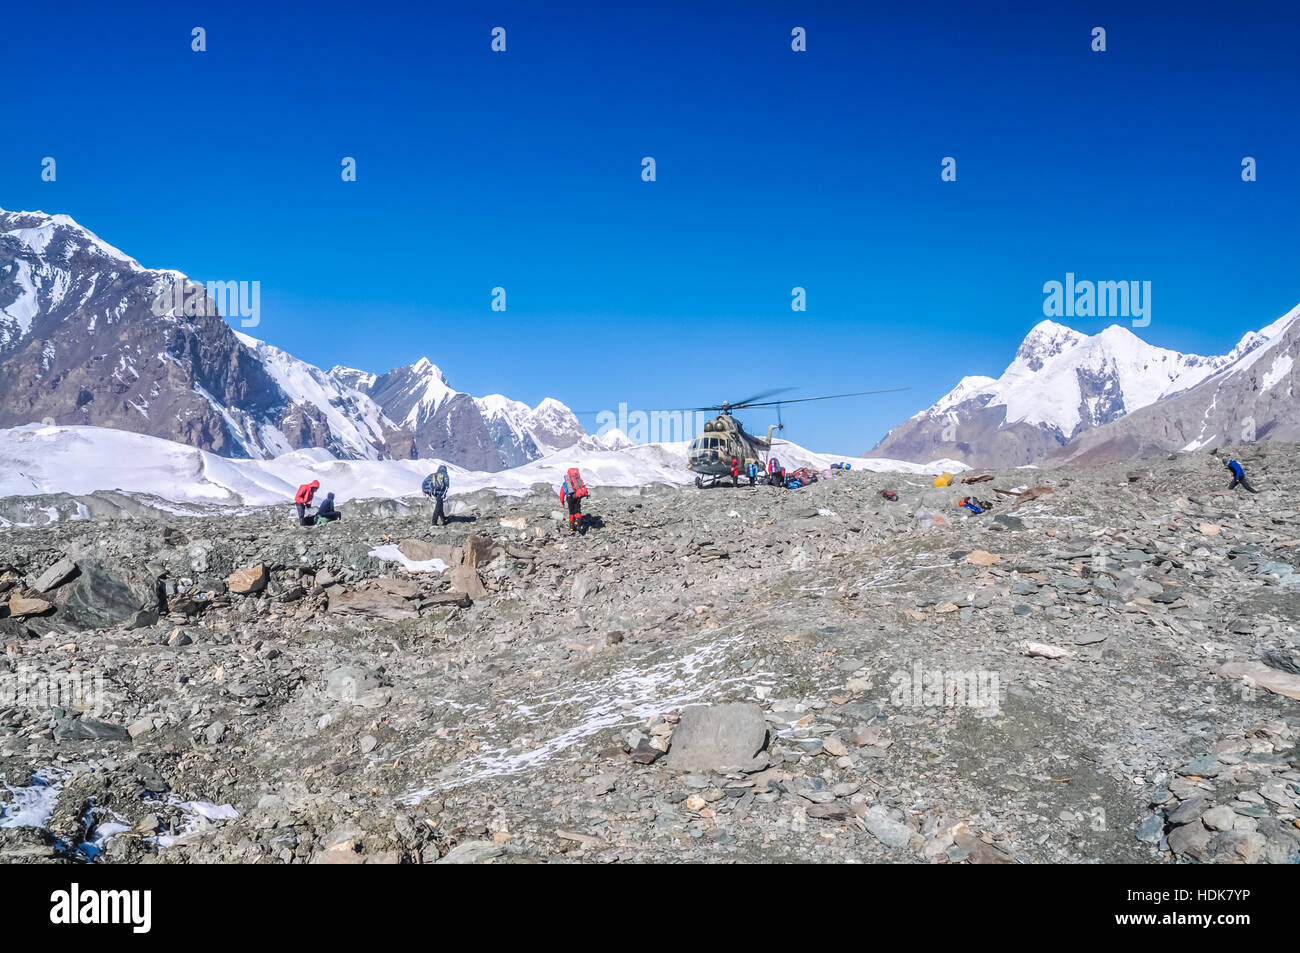 Photo of helicopter and hikers on rocky terrain surrounded by mountains near South Inylcheck Glaciar in Kyrgystan. - Stock Image